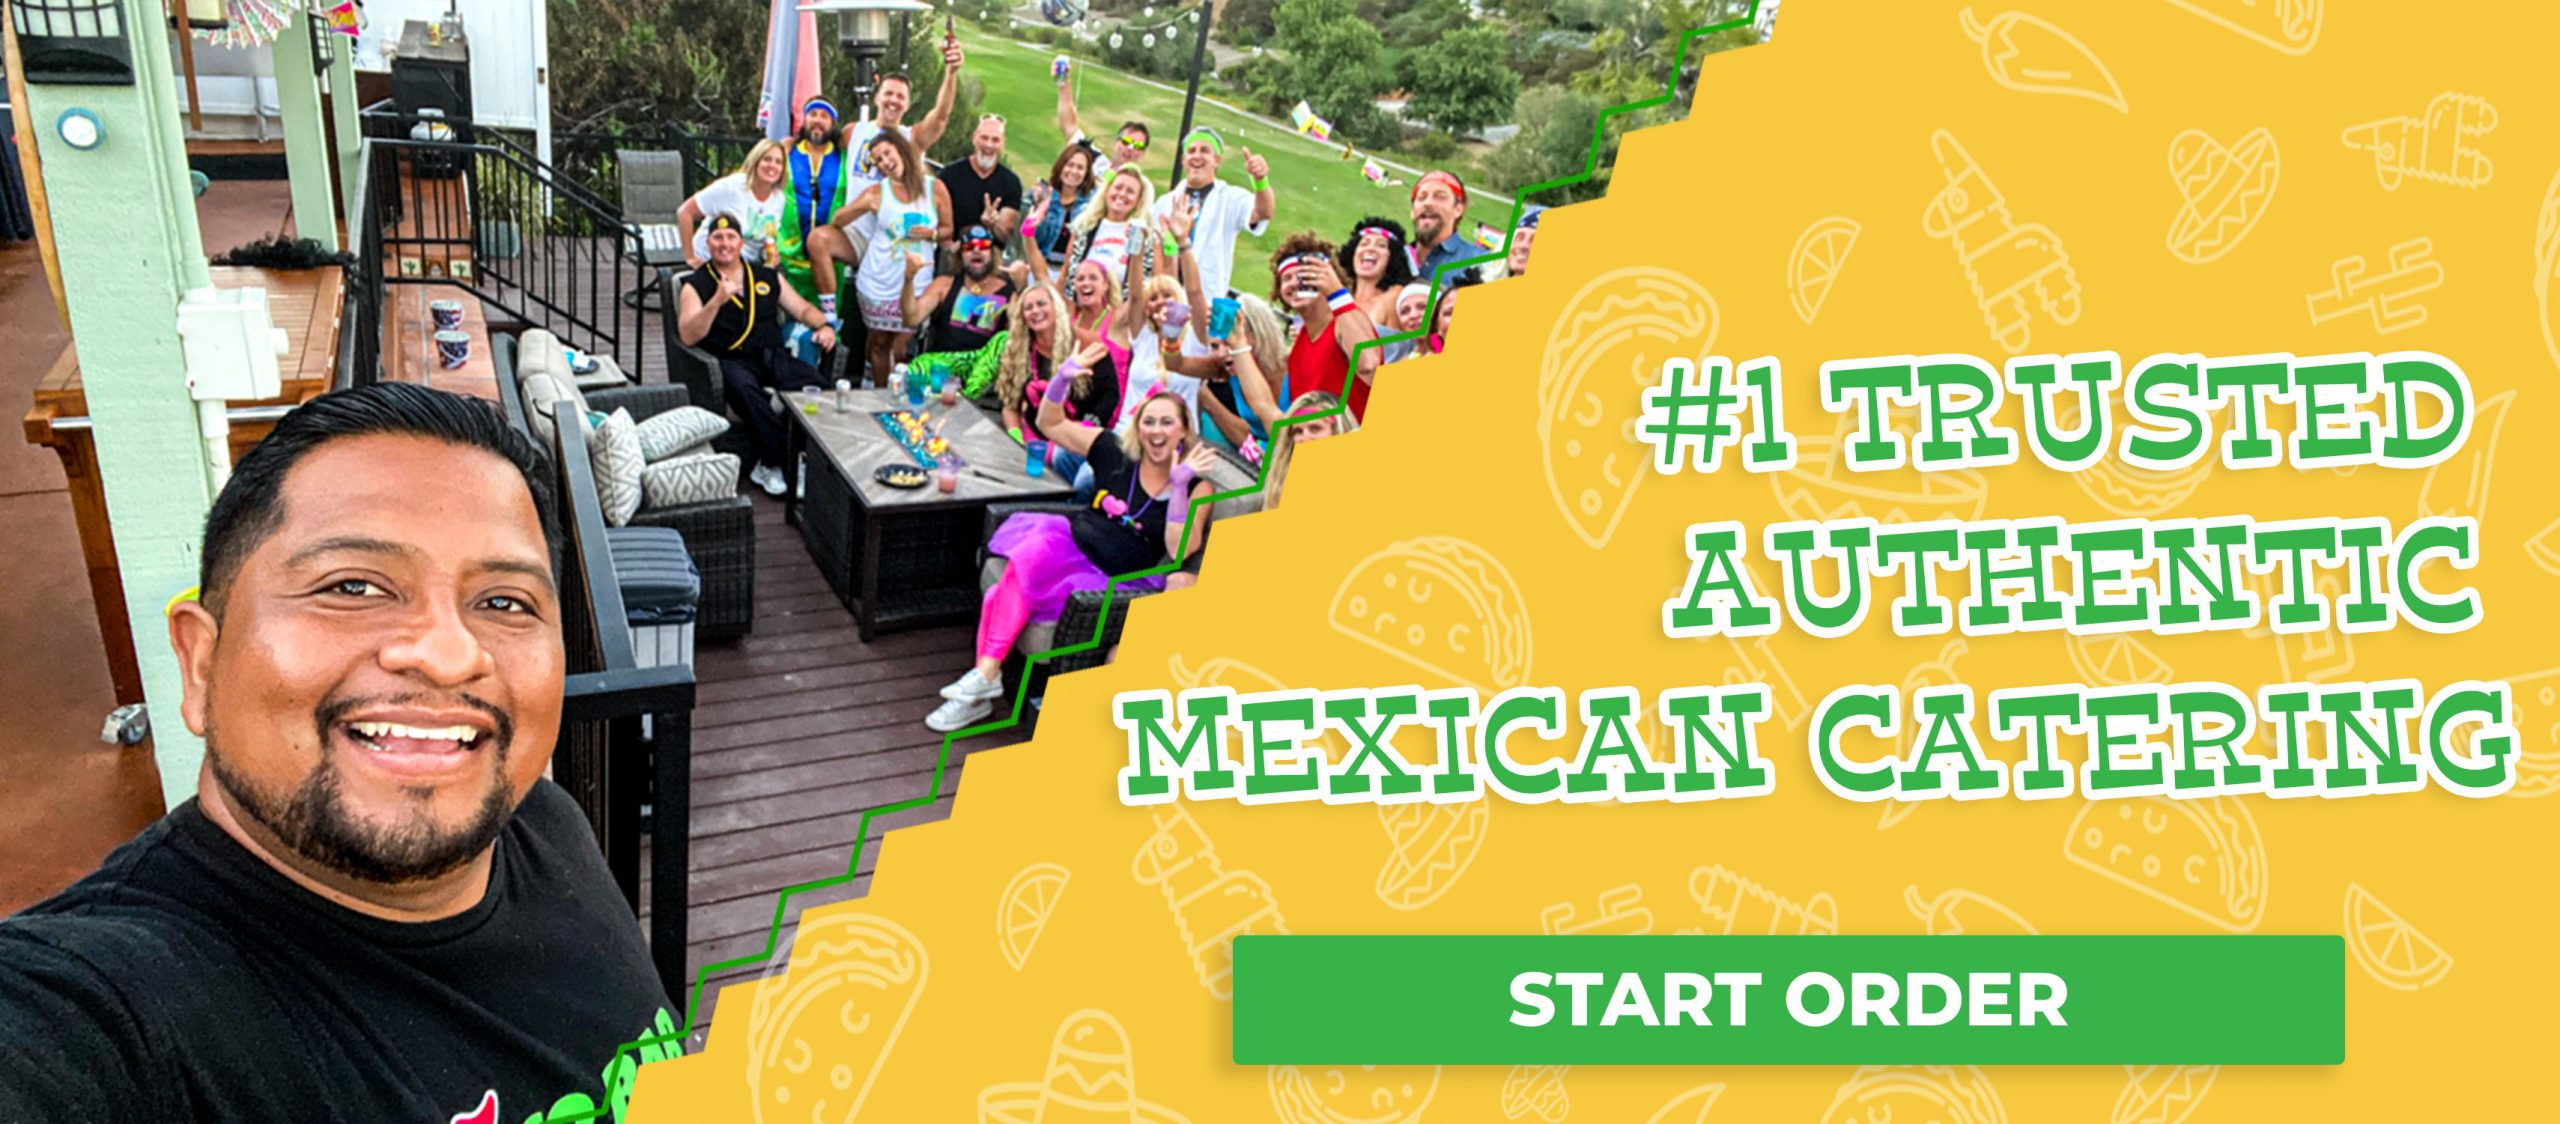 #1 Trusted Authentic Mexican Catering